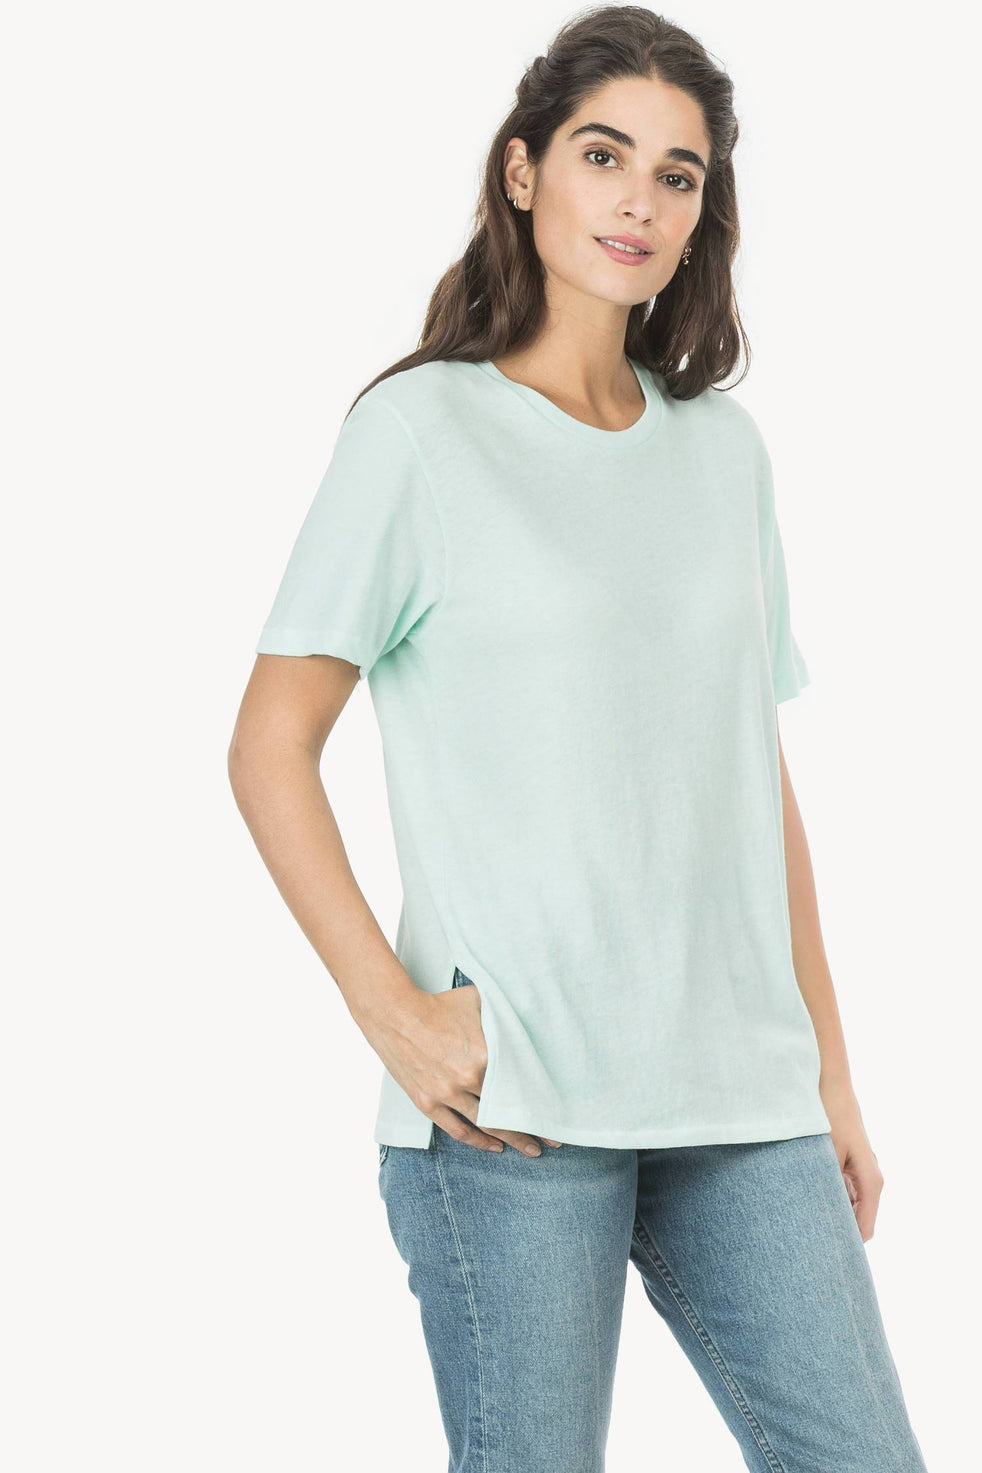 32d8a0eed54 Women's Tops, Tees & Blouses | 100% Cotton Shirts | Classic T Shirts